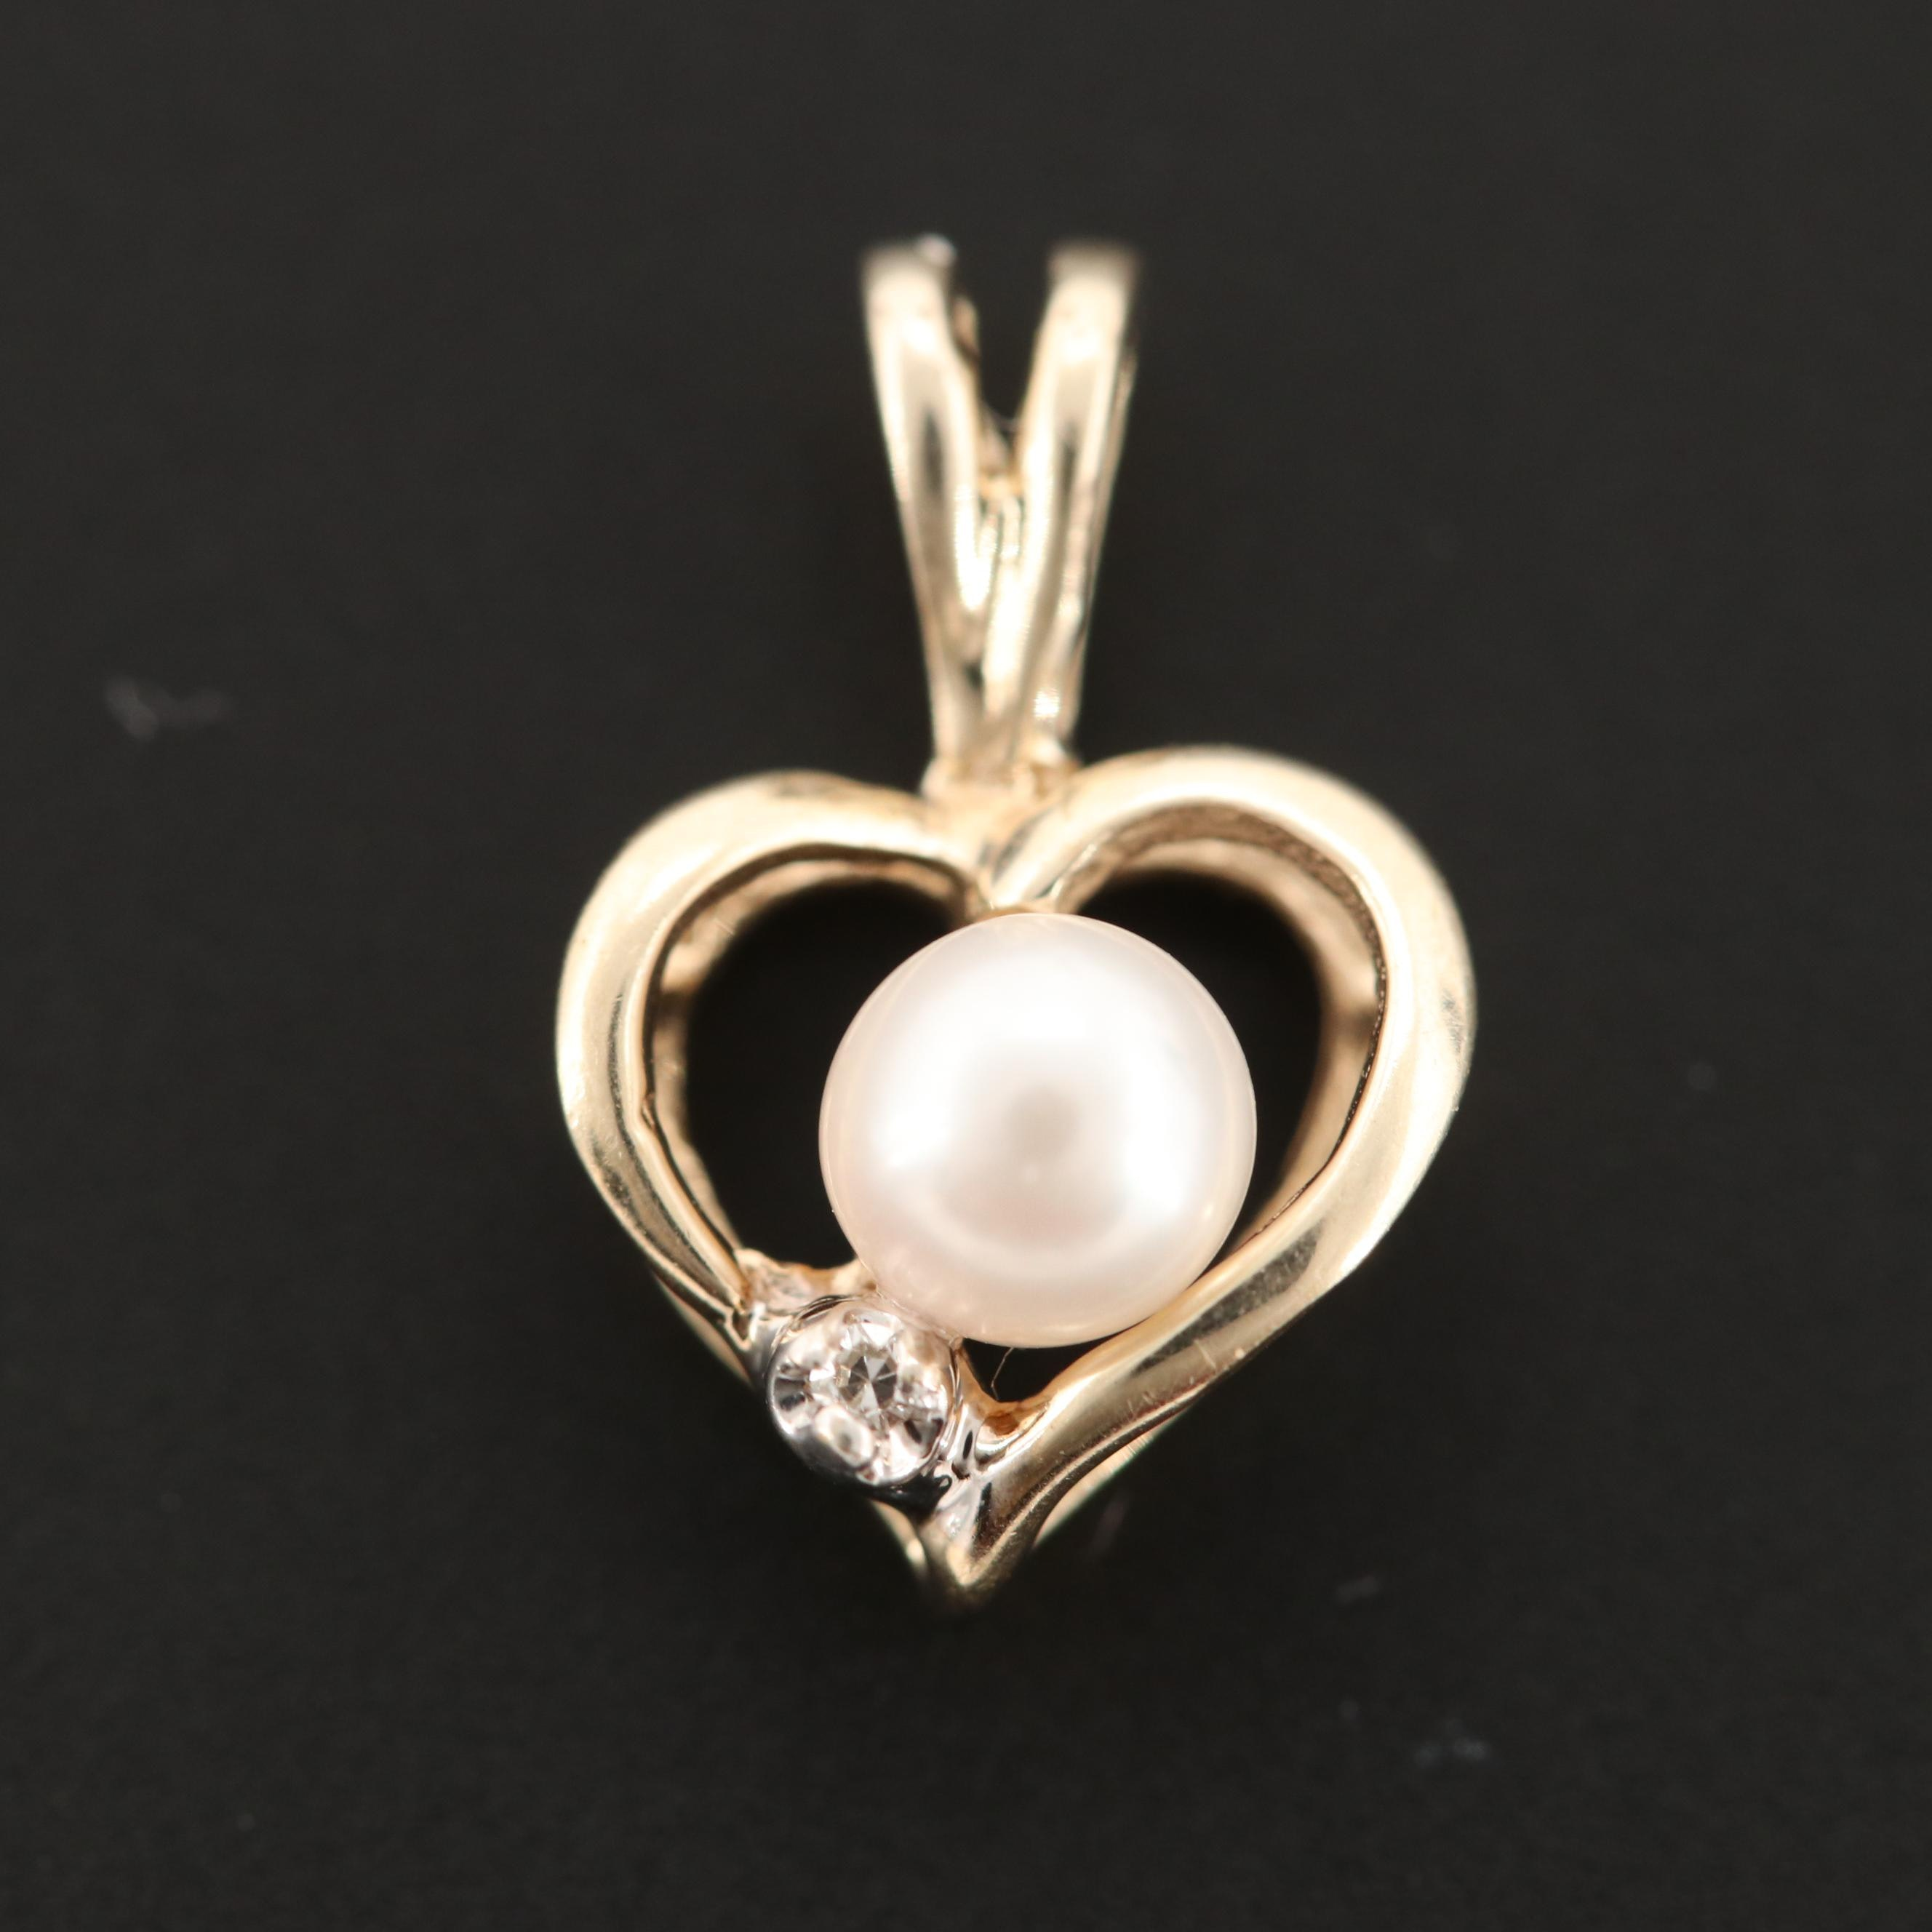 10K Yellow Gold Cultured Pearl and Diamond Heart Pendant